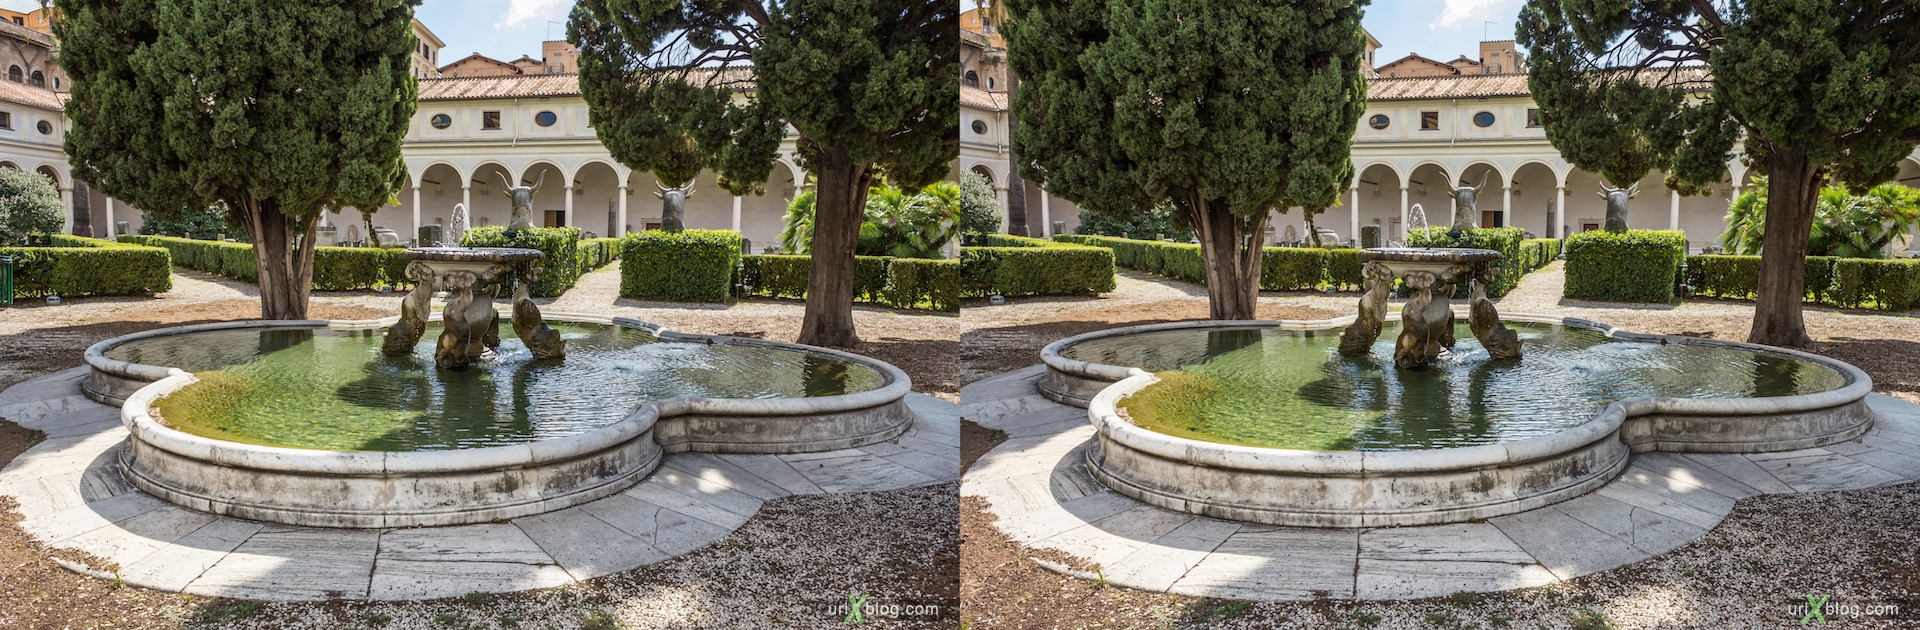 2012, fountain, National Museum of Rome, Diocletian's Baths, Rome, Italy, 3D, stereo pair, cross-eyed, crossview, cross view stereo pair